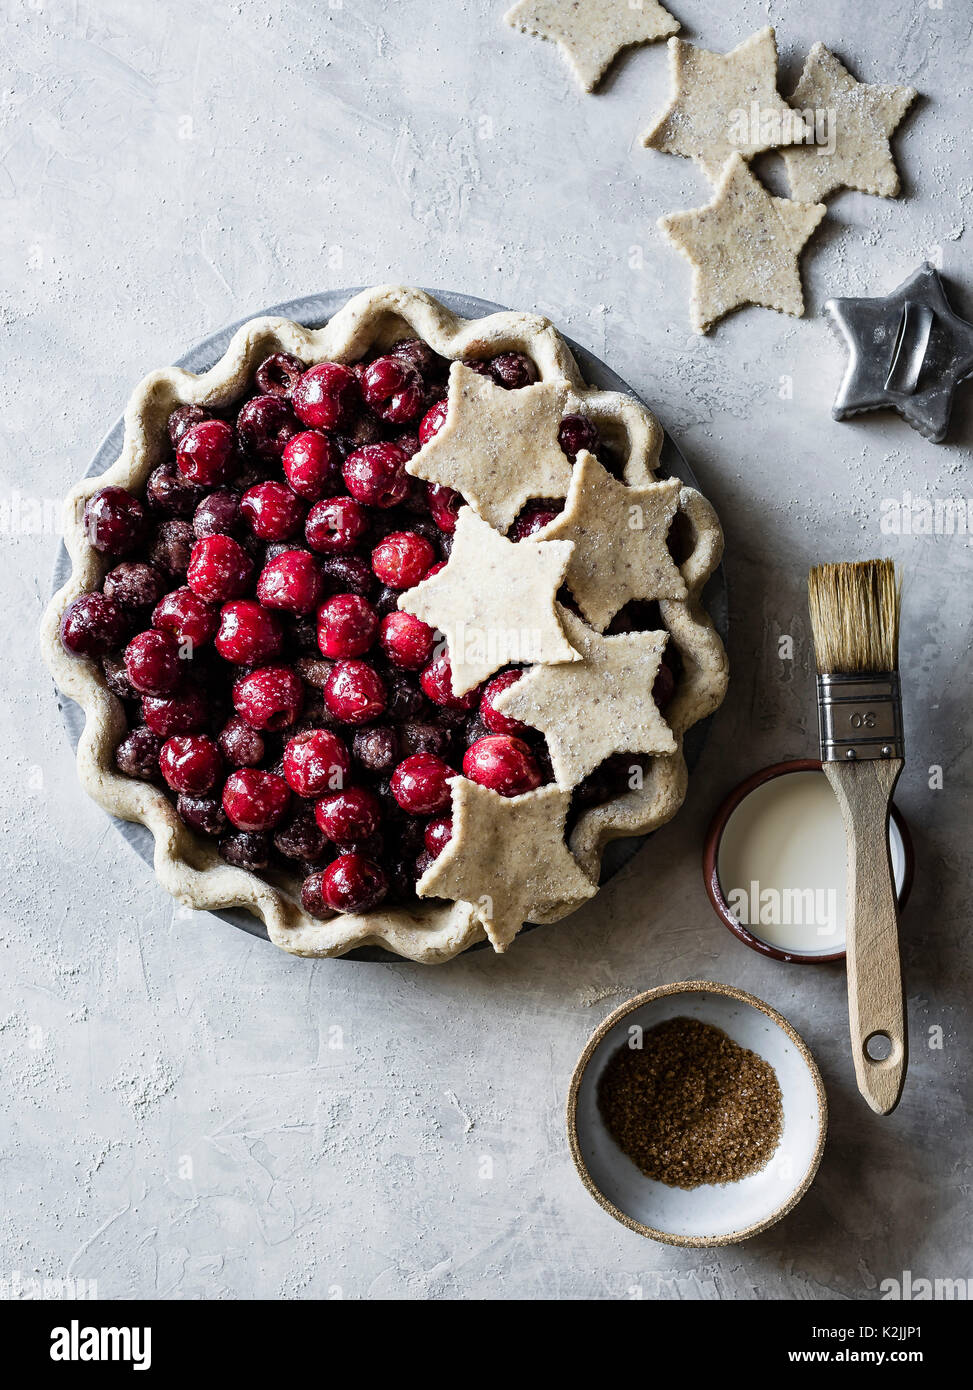 A cherry pie, with fresh cherries. Home made. - Stock Image